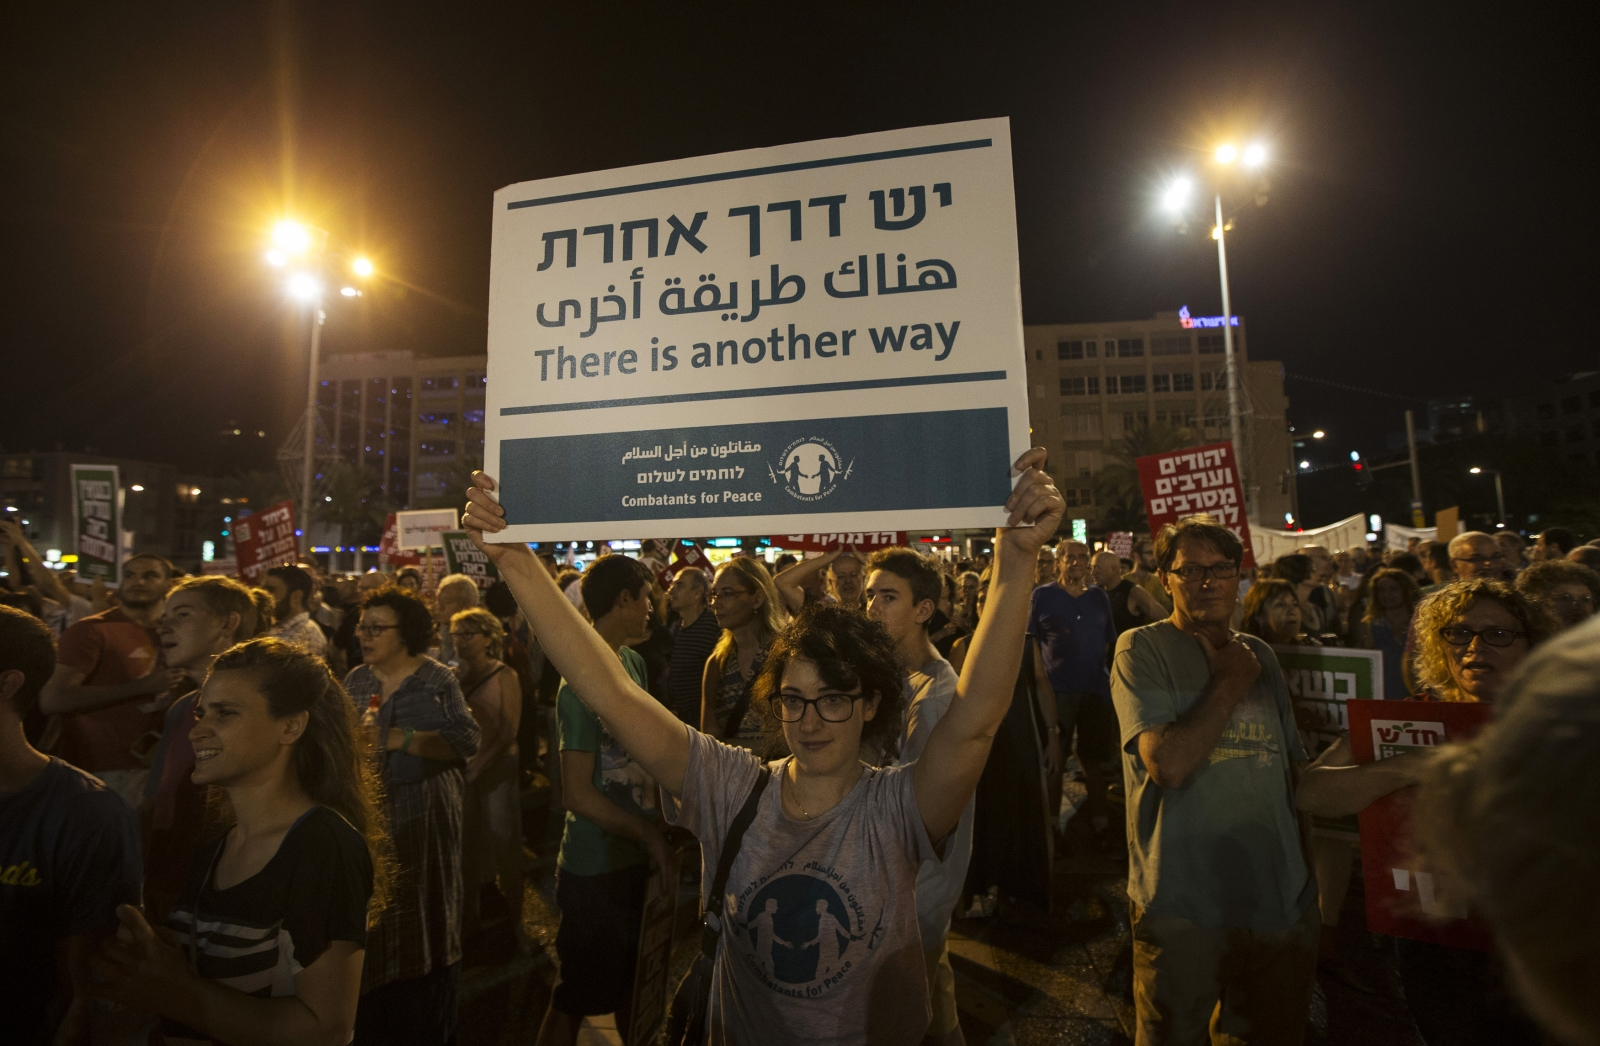 A woman holds up a placard during a peace rally in Tel Aviv's Rabin Square August 16, 2014.